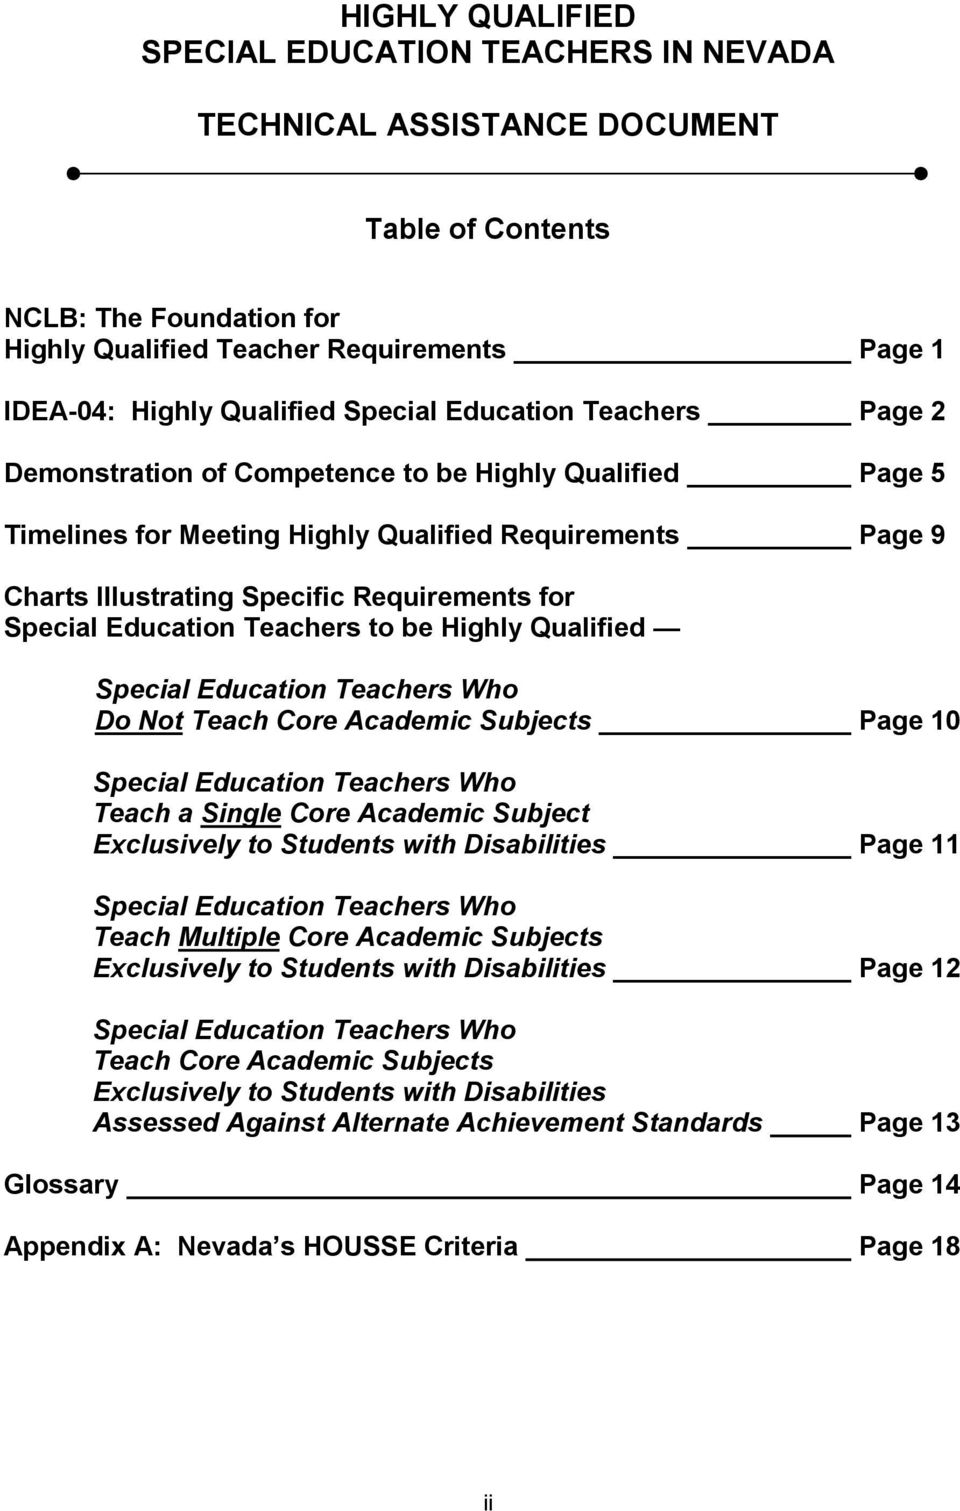 Special Education Teachers to be Highly Qualified Special Education Teachers Who Do Not Teach Core Academic Subjects Page 10 Special Education Teachers Who Teach a Single Core Academic Subject